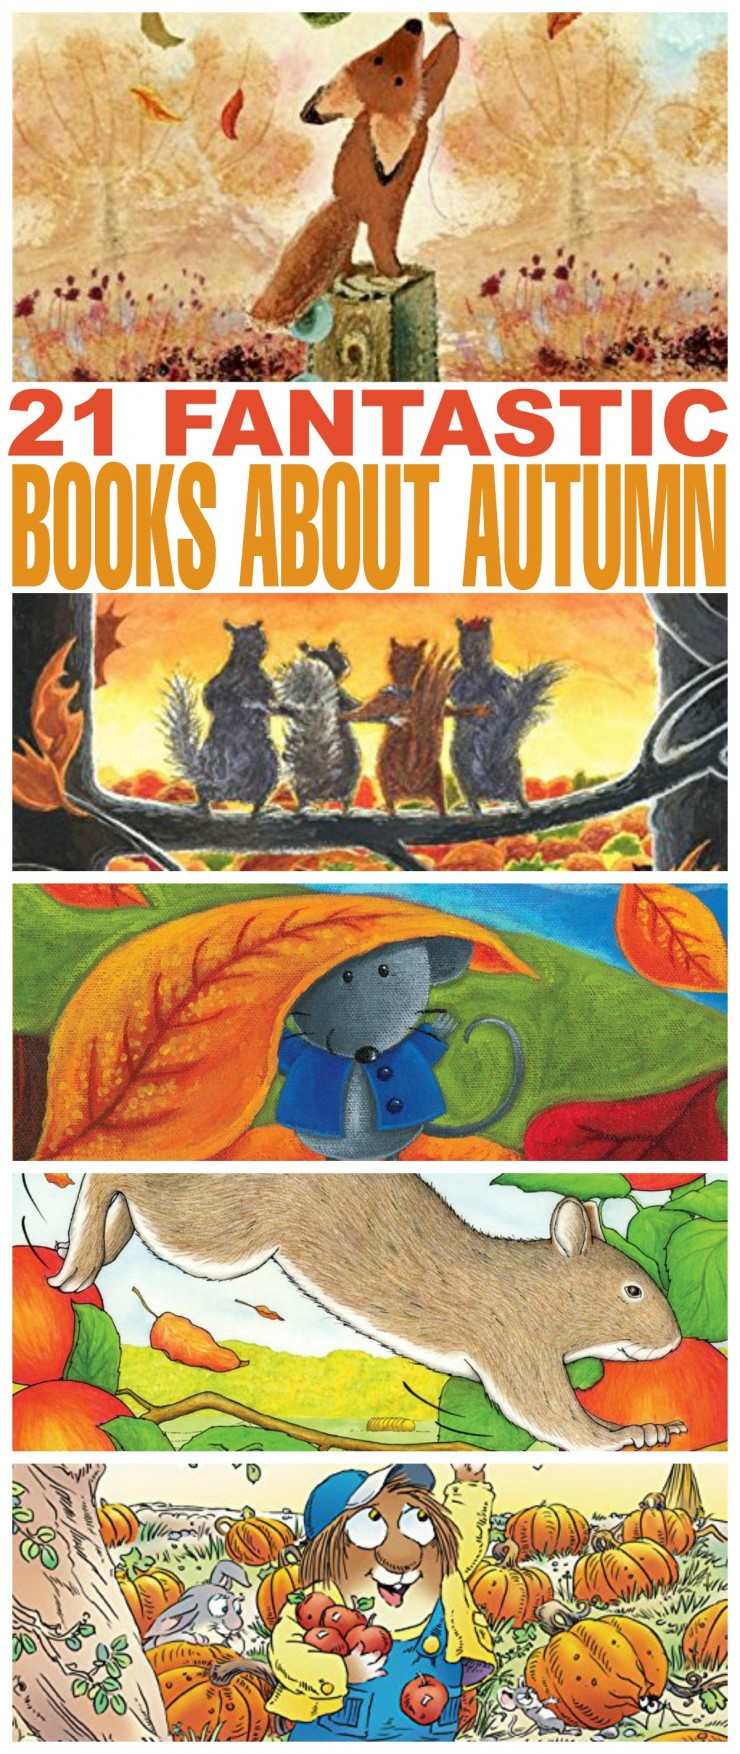 21 Fantastic Books About Autumn